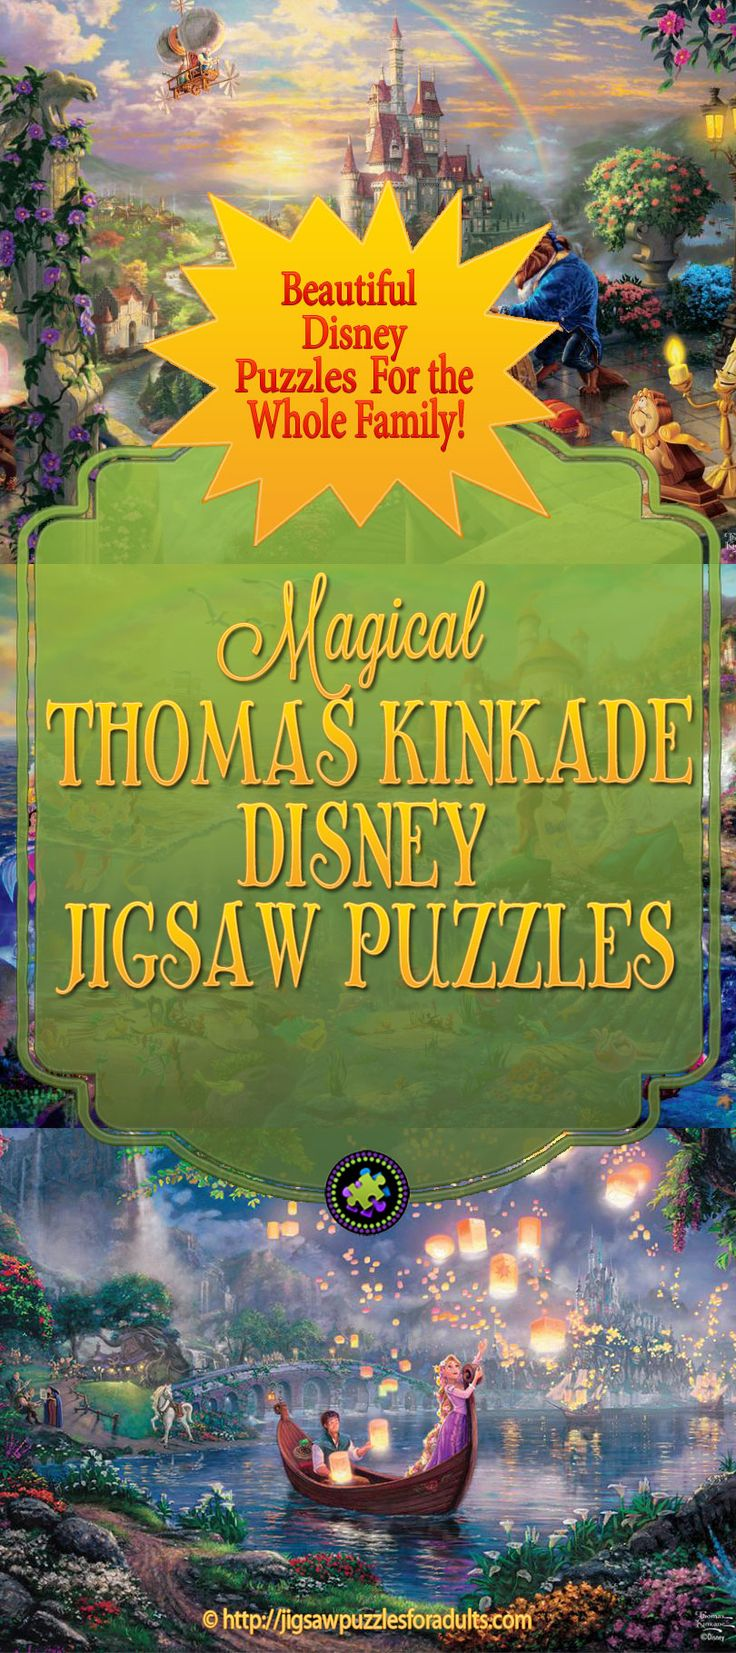 "These Thomas Kinkade Disney Puzzles are totally enchanting? You'll find plenty of absolutely beautiful Disney Puzzles of all your favorite characters from Thomas Kinkade's art. So whether you're a fan of ""The Painter of Light"" Thomas Kinkade or you just simply love Disney films, you'll be delighted with this large selection of Disney Jigsaw Puzzles."